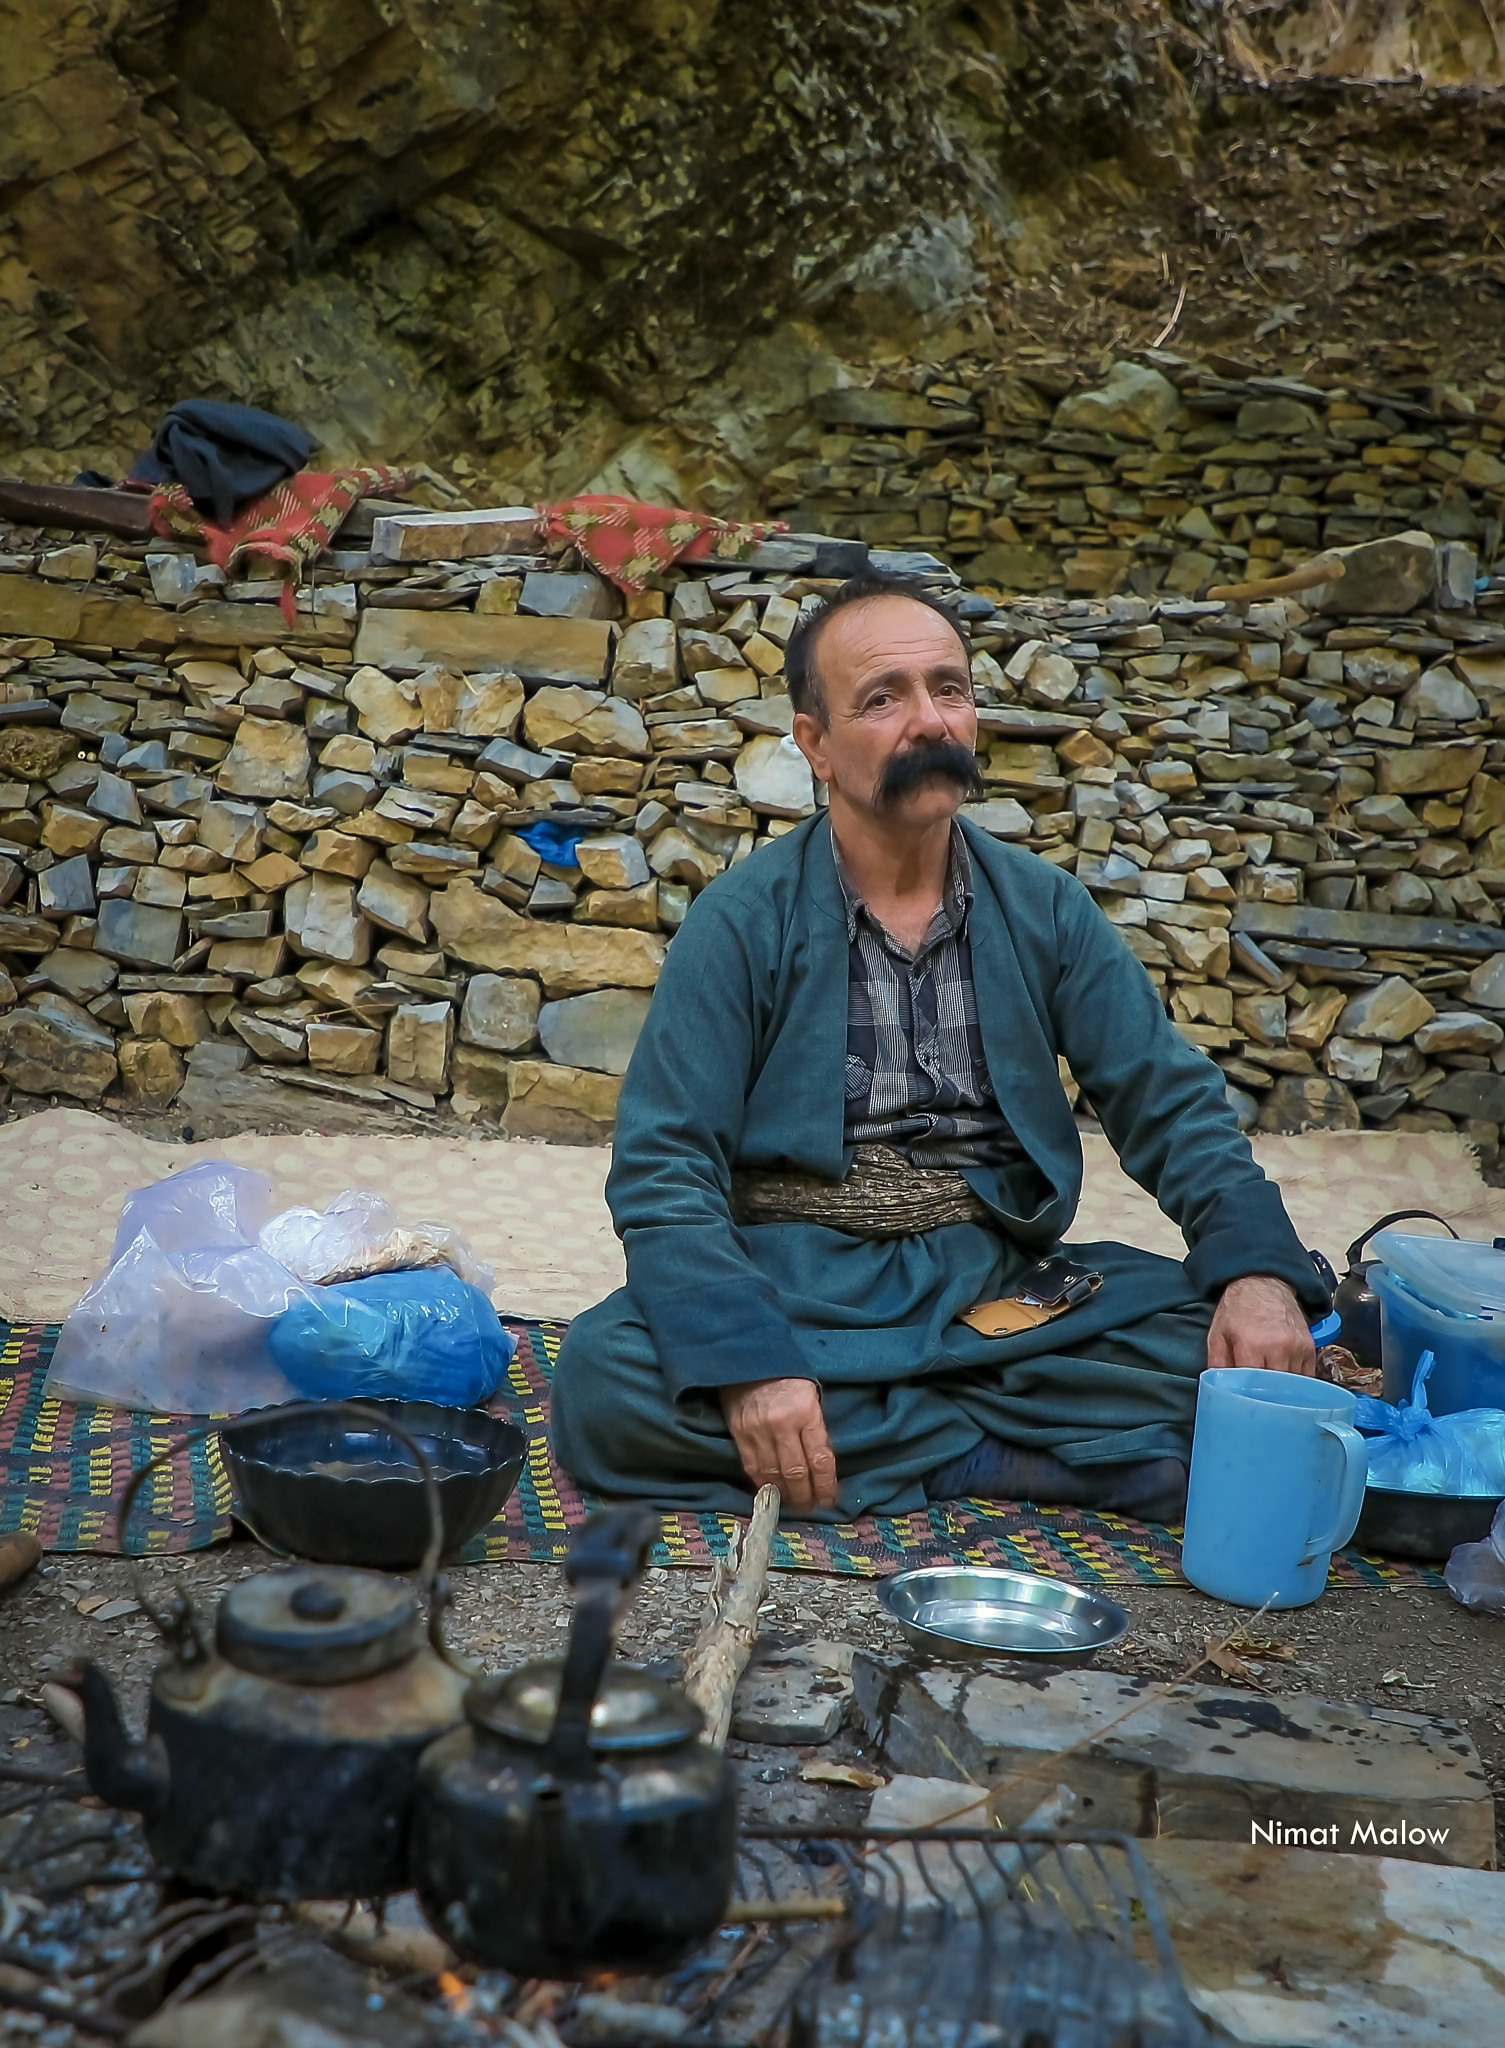 Kurdish man by Nimat Malow